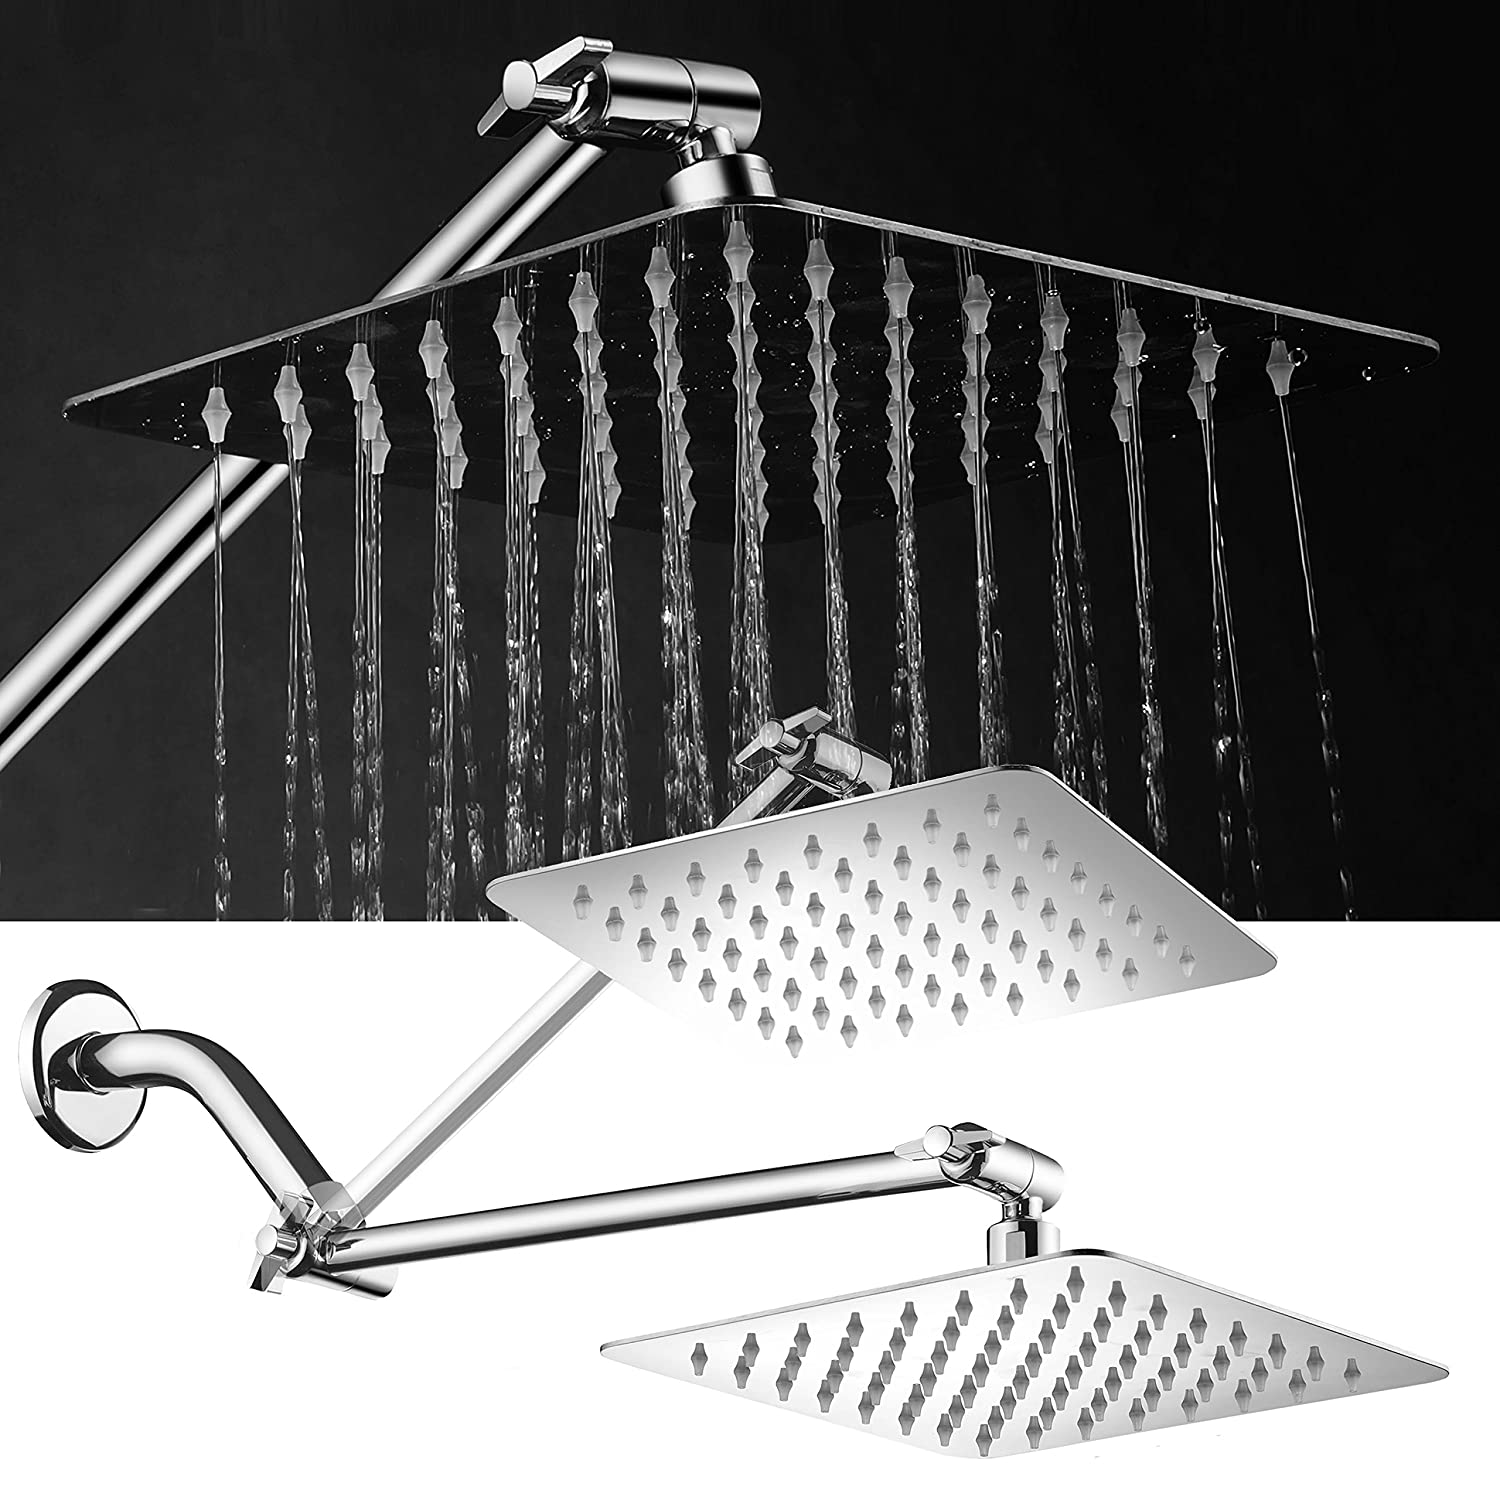 Hotelspa Giant 10 Stainless Steel Rainfall Square Showerhead With